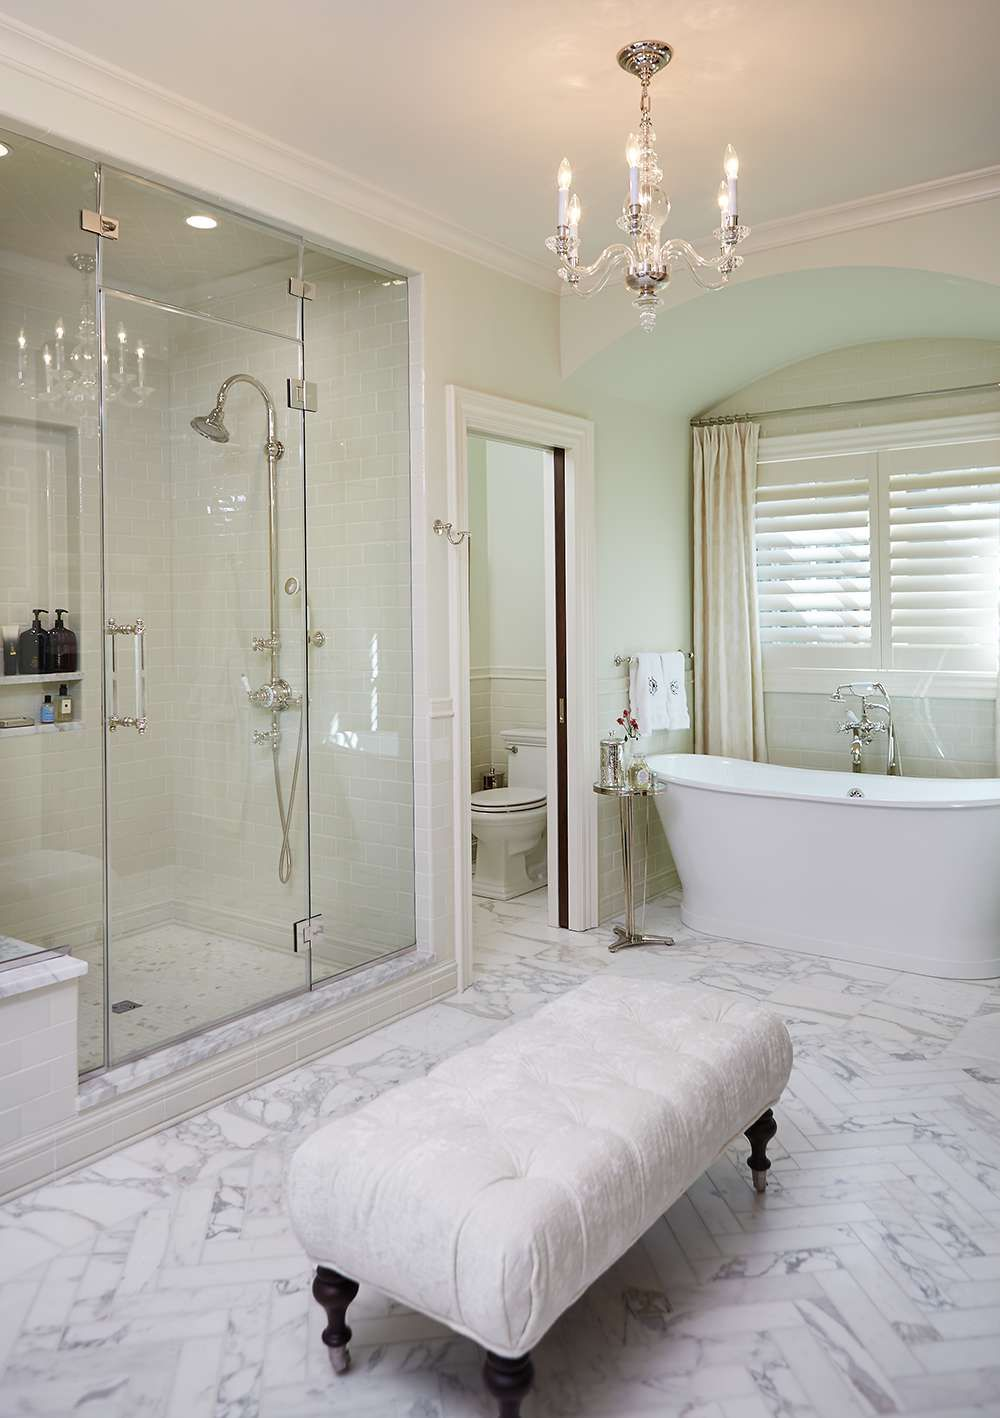 Master bedroom bathroom layout  Elegant bathroom design with stand alone tub glass door shower and